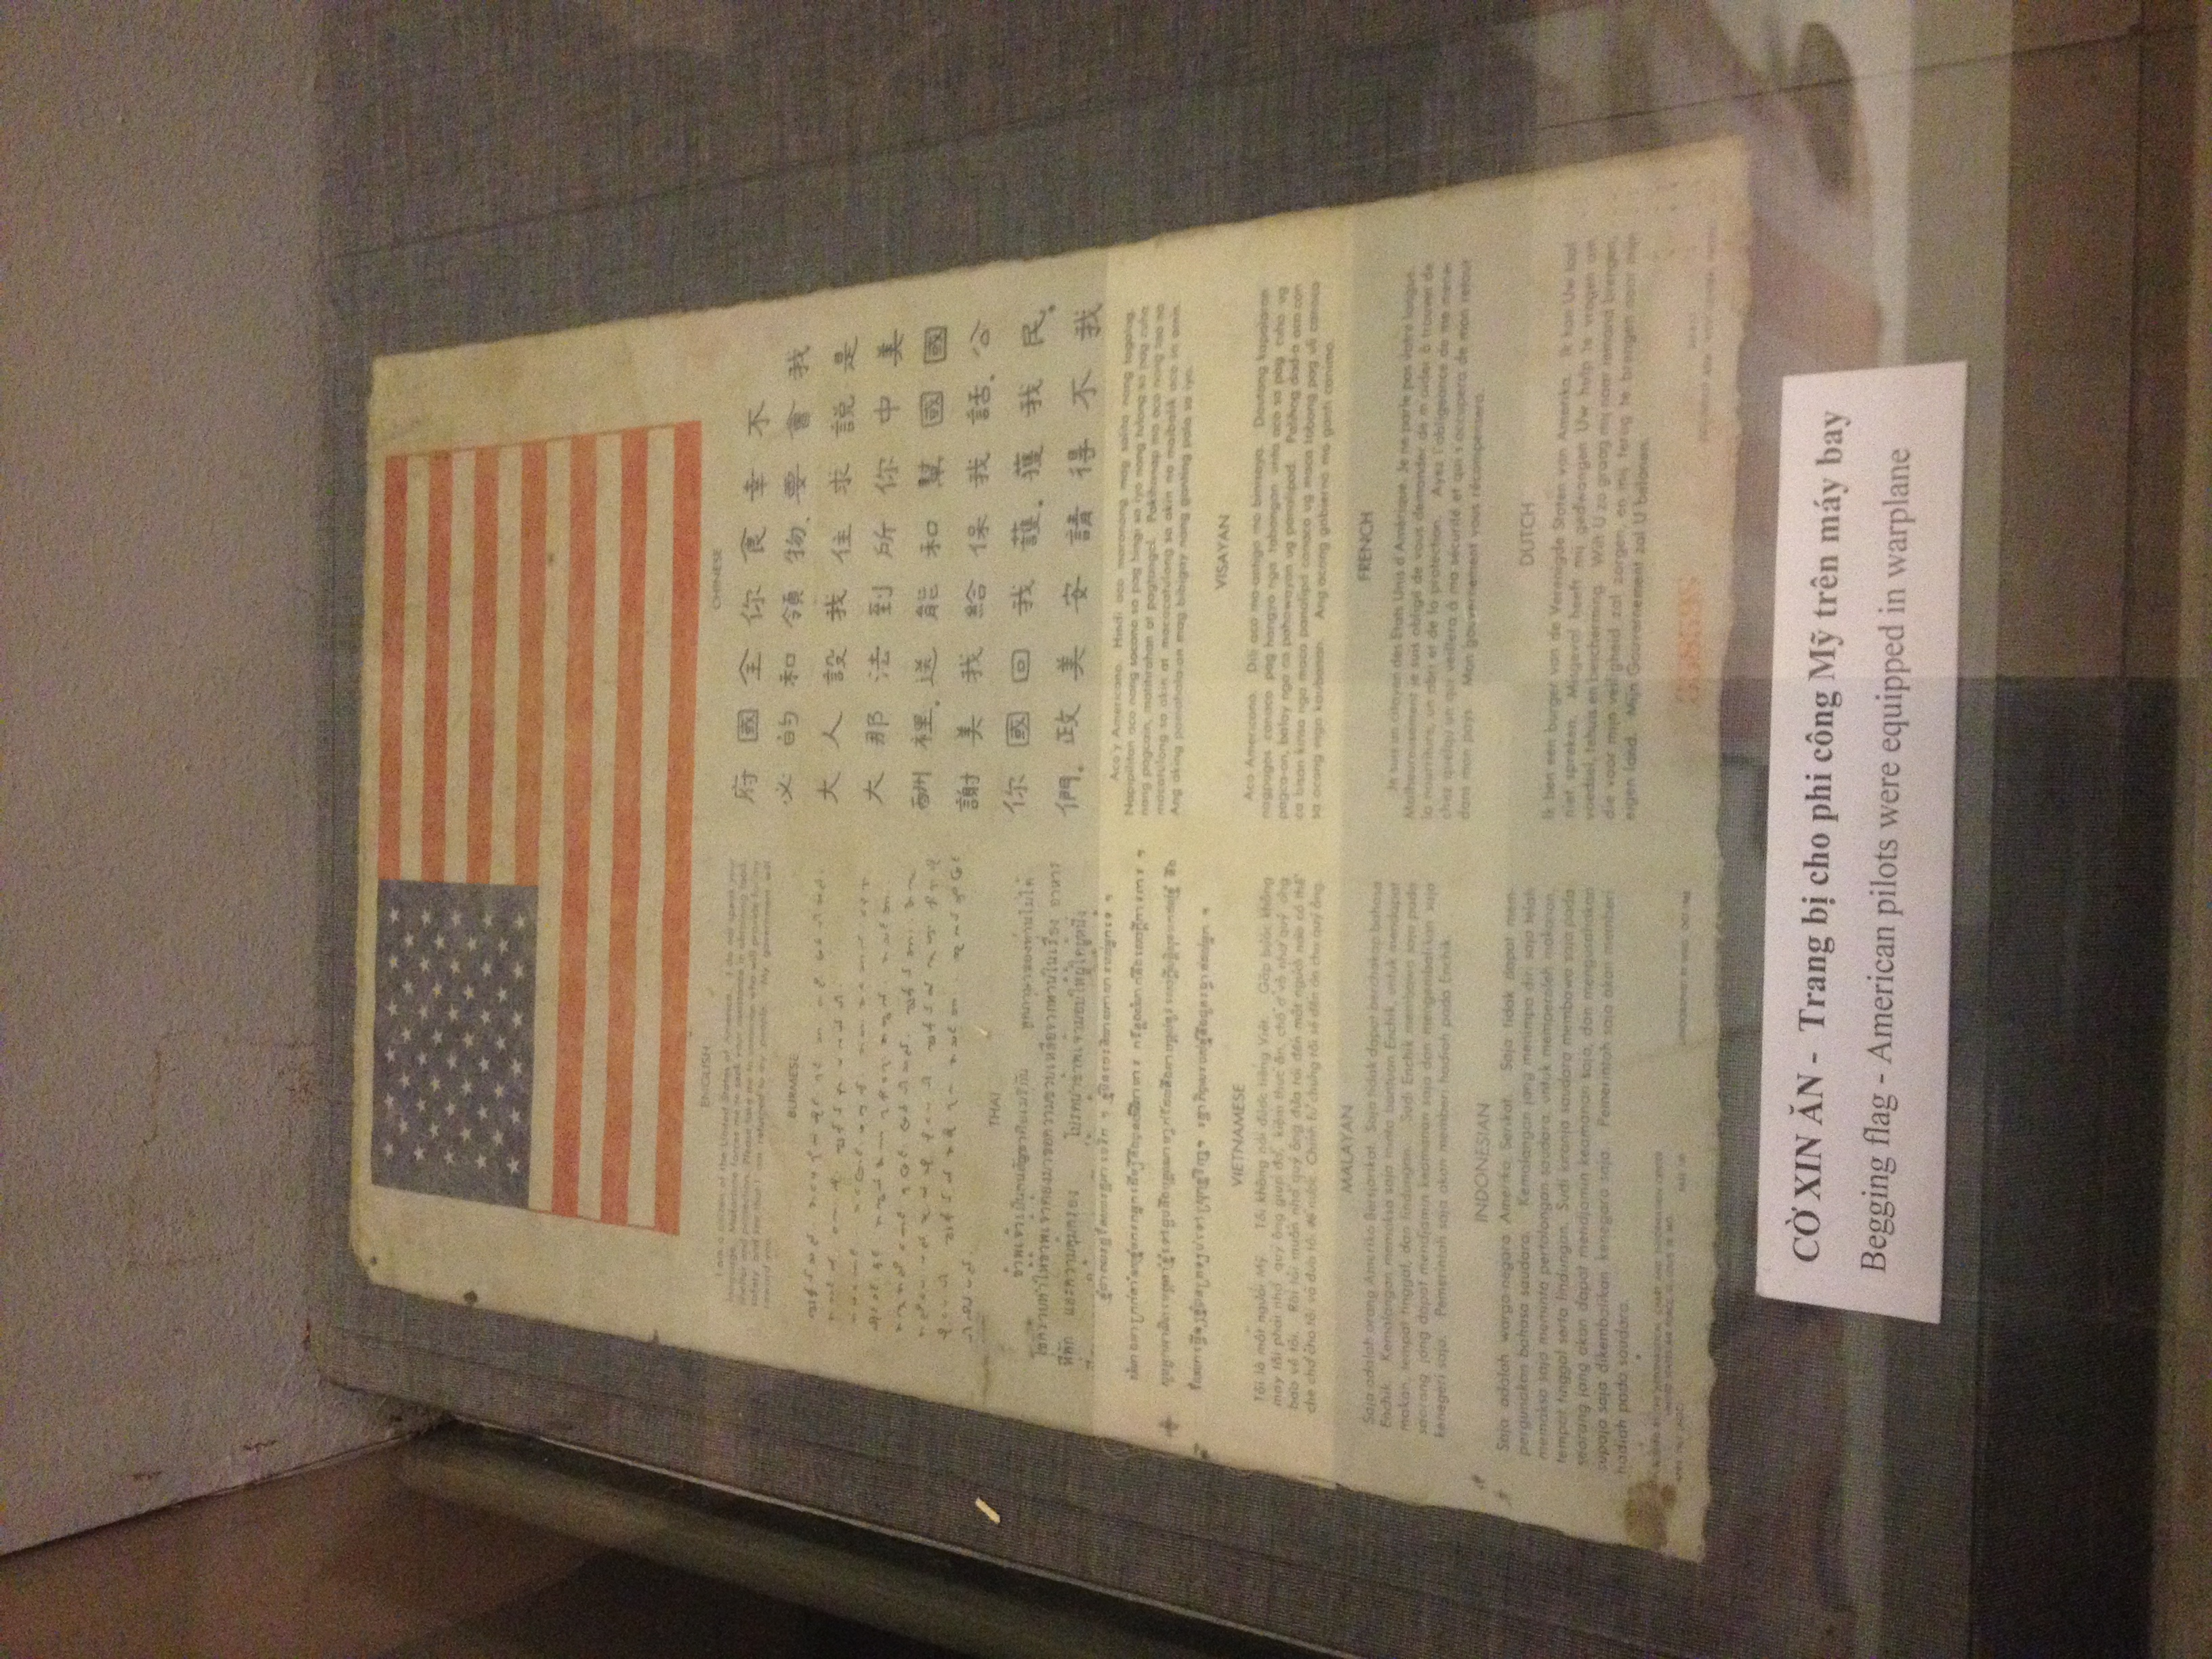 Propoganda from the Hanoi Hilton